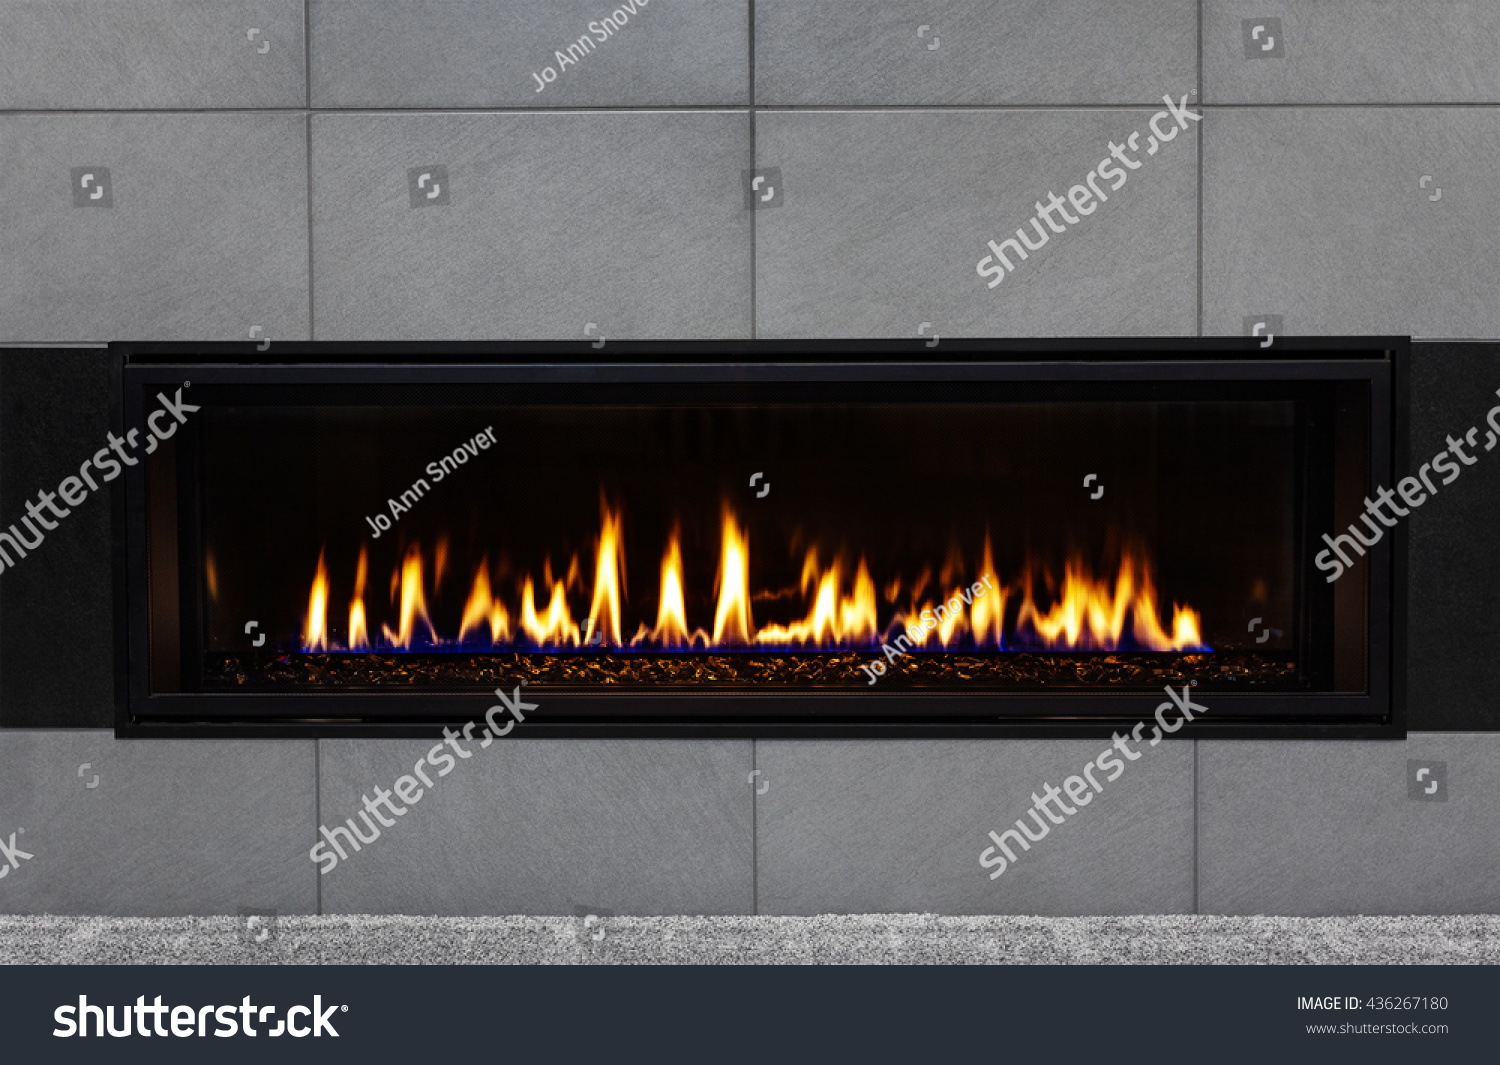 Sleek Modern Gas Fireplace With Gray Tile Surround And